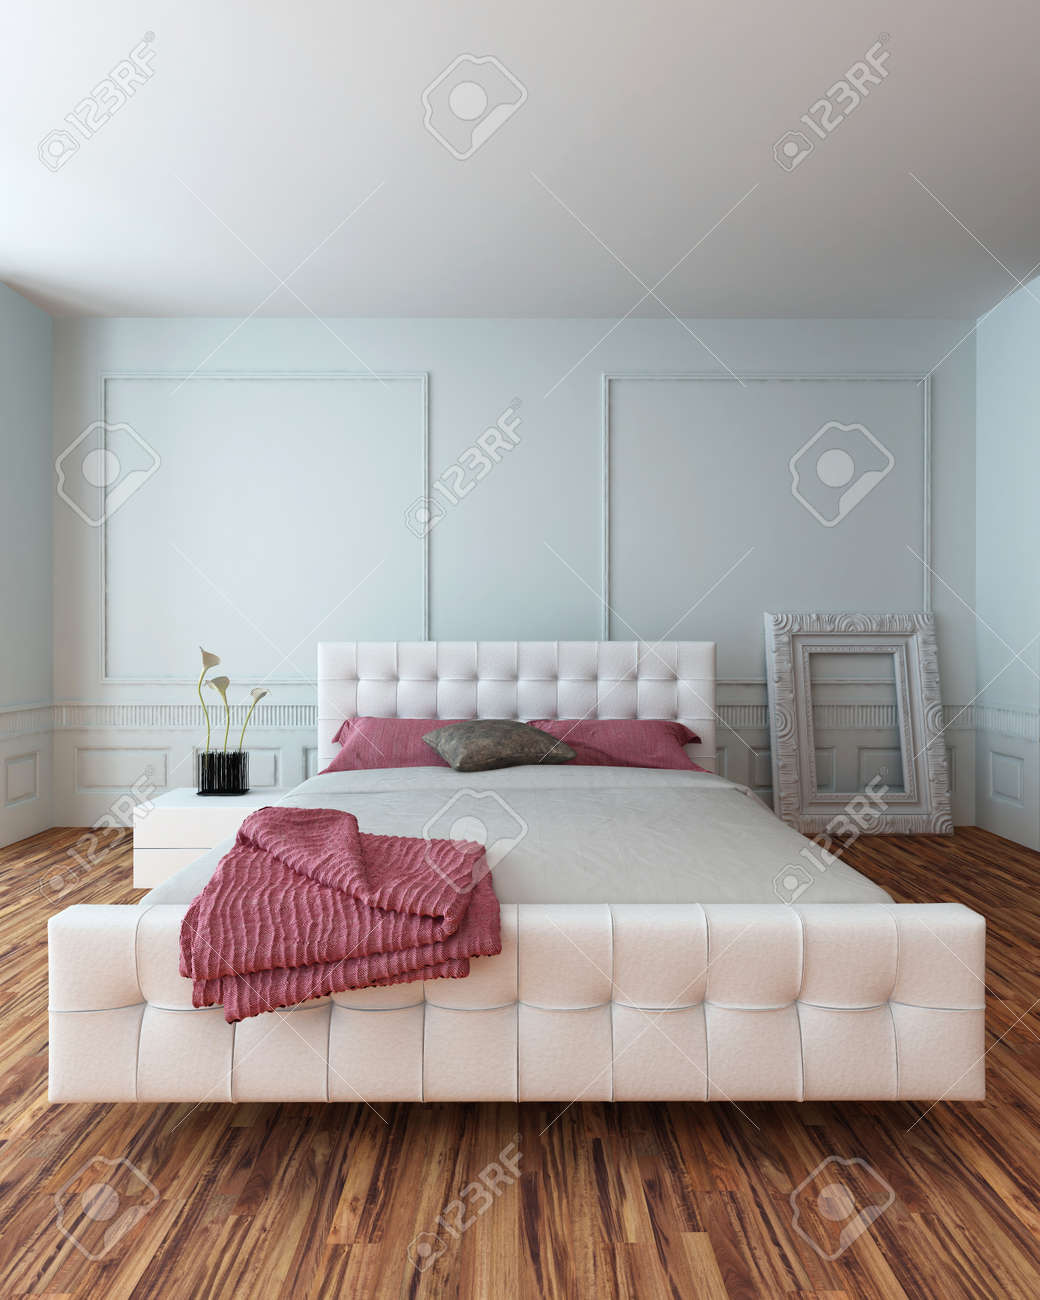 White Bedroom Suite. White leather upholstered bedroom suite in a modern white interior  with wooden parquet floor Leather Upholstered Bedroom Suite In A Modern